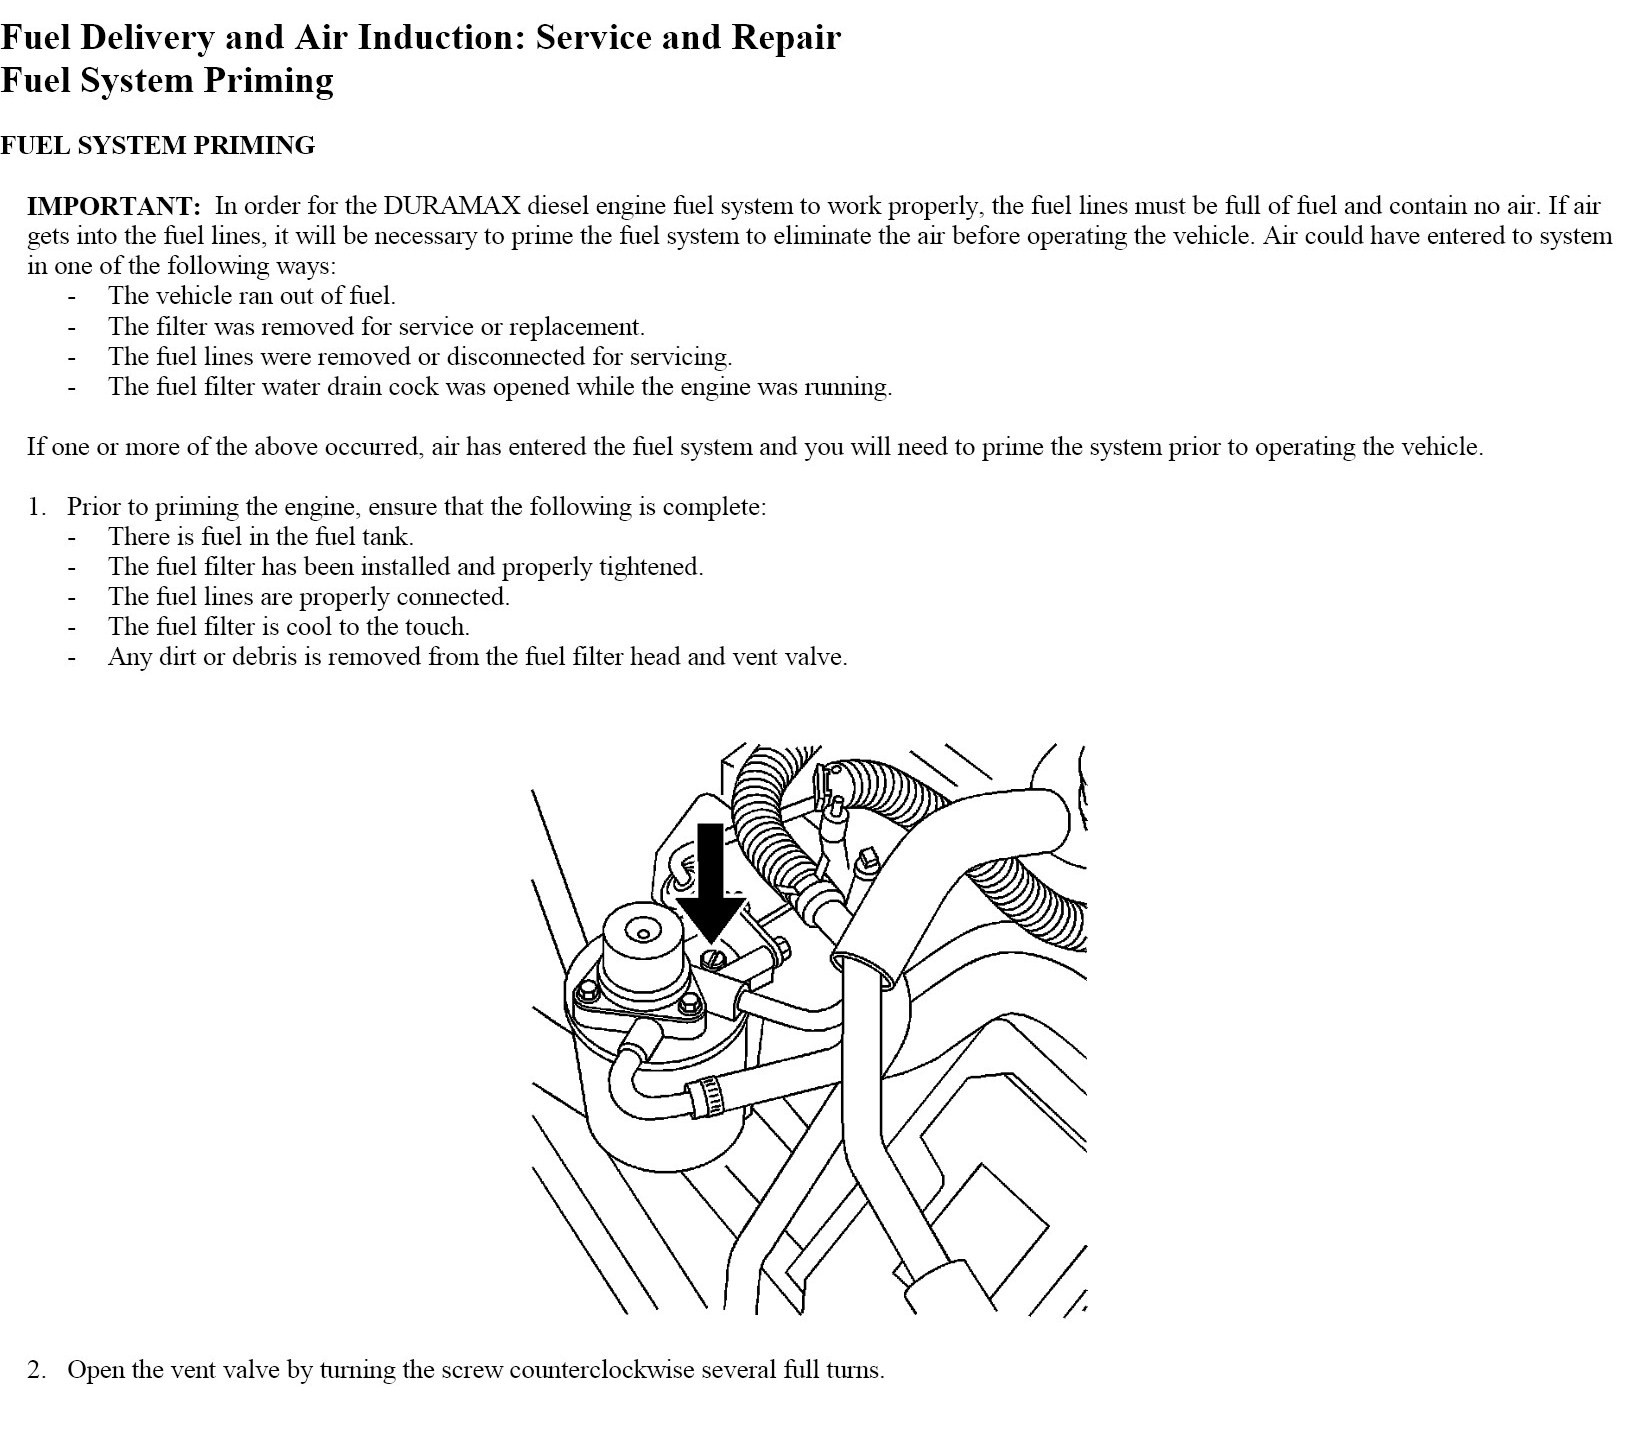 Fuel Filter Location 2004: Where Is The Fuel Pump Located For A 2004 Gmc Sierra 2500